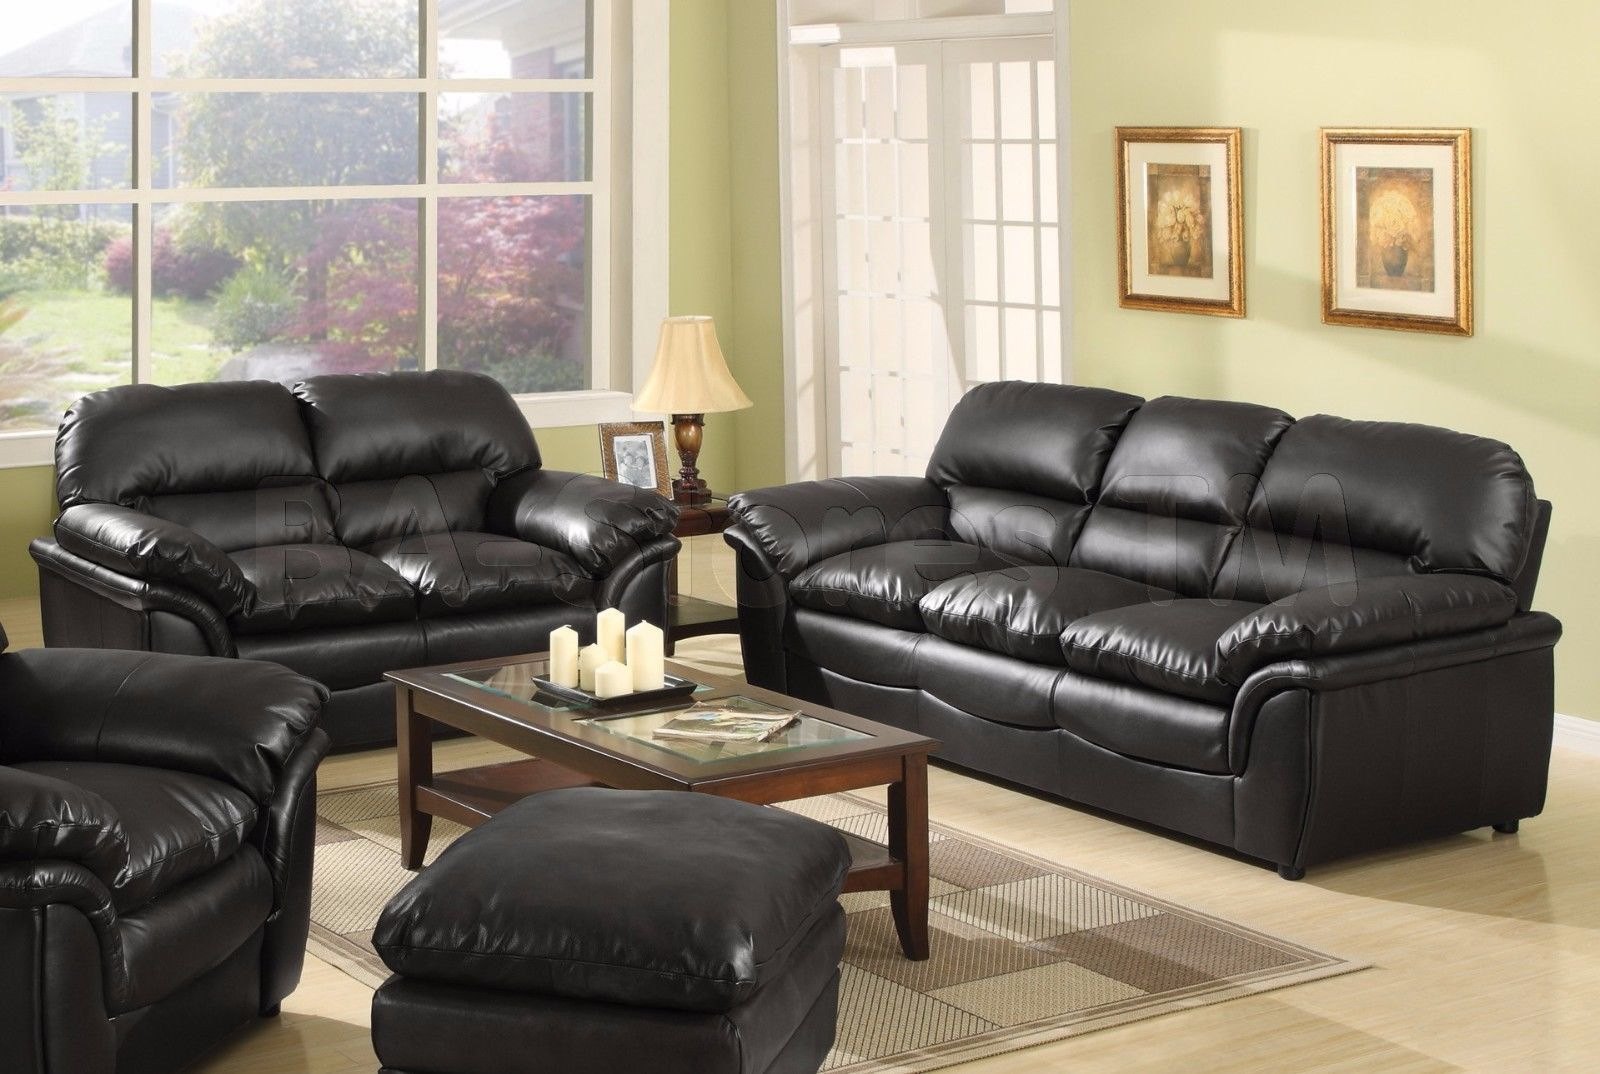 Meridian 604 Black Bonded Leather Living Room Sofa Set 2pc. Modern Style